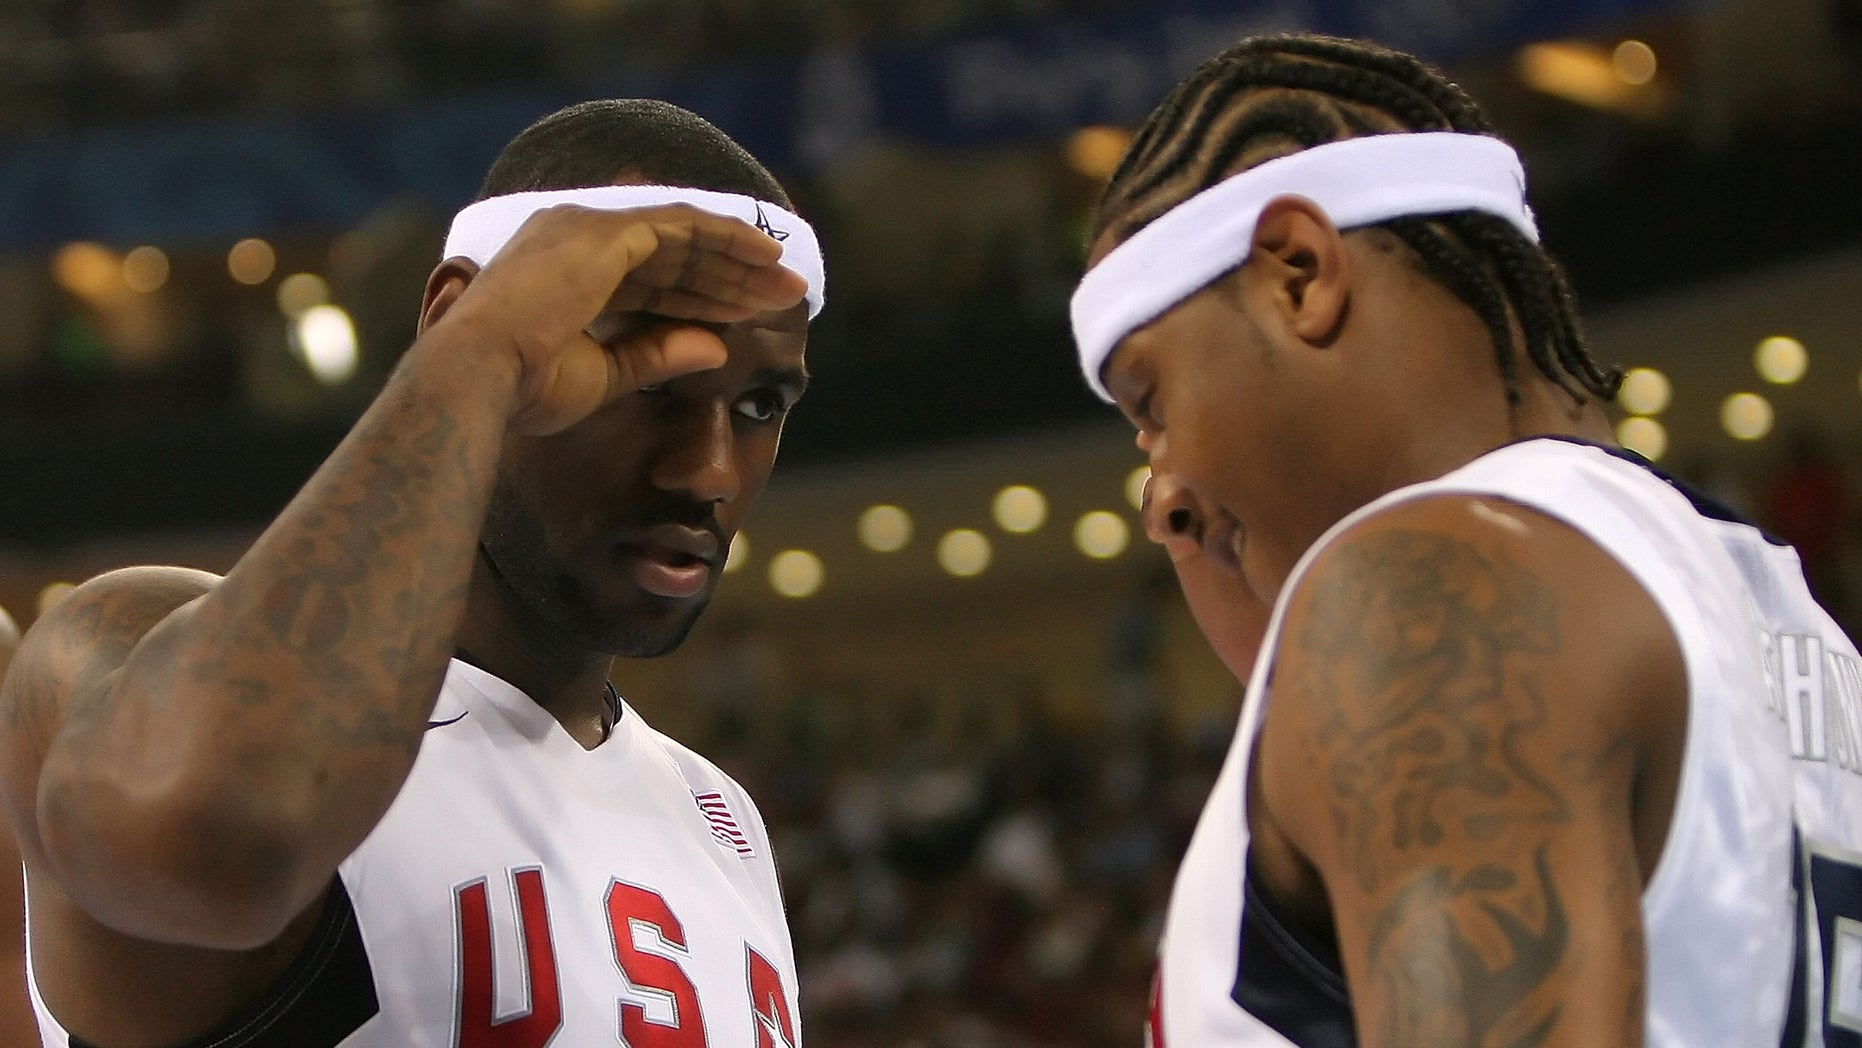 BEIJING - AUGUST 20:  Lebron James #6 and Carmelo Anthony #15 of the United States salute one another before the men's basketball quarterfinal game against Australia at the Olympic Basketball Gymnasium during Day 12 of the Beijing 2008 Olympic Games on August 20, 2008 in Beijing, China.  (Photo by Streeter Lecka/Getty Images)